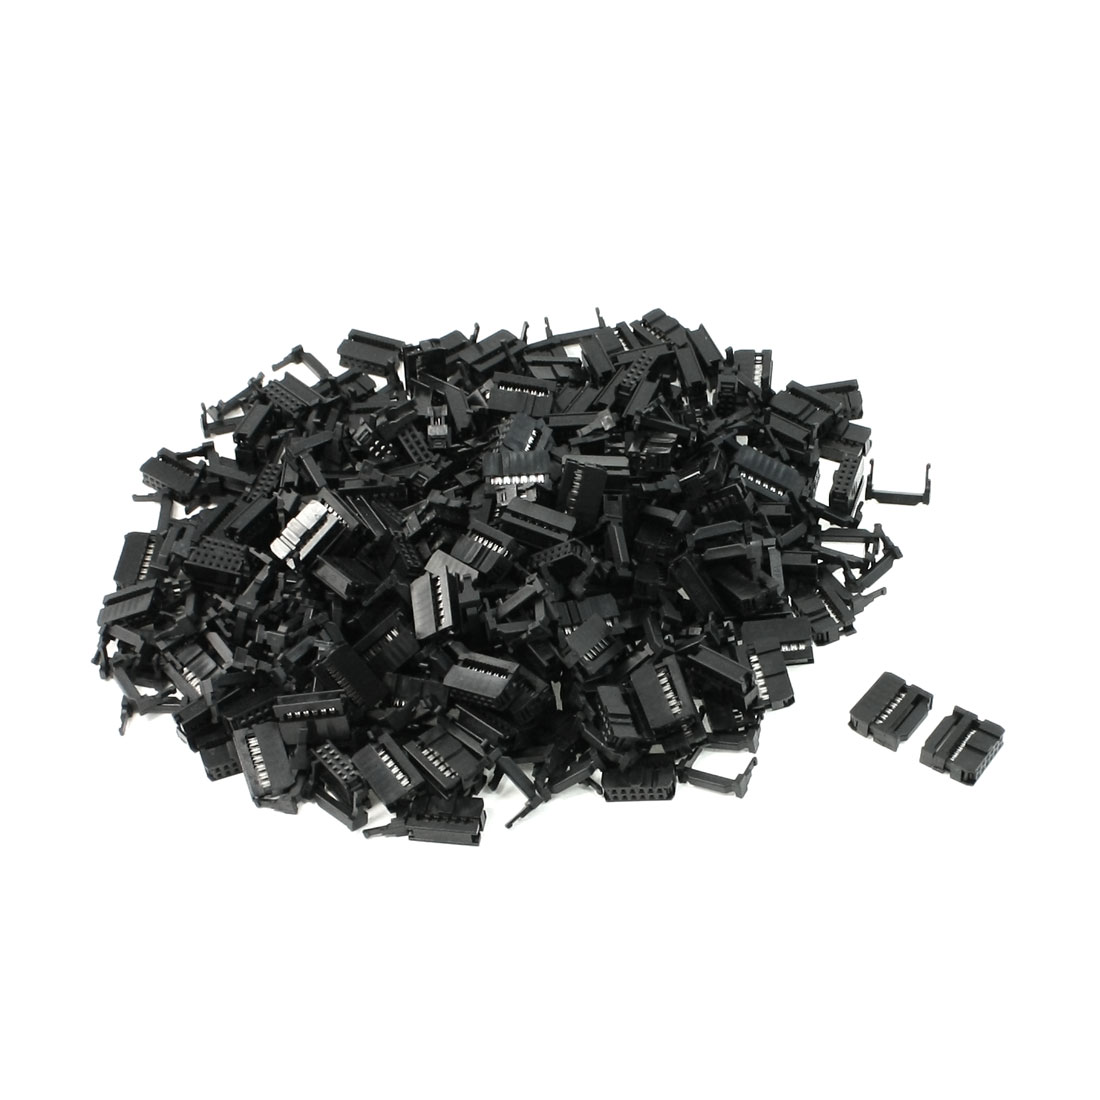 FC-12P 2.2mm Pitch Position Flat Cable IDC Socket Connector Black 200 Pcs